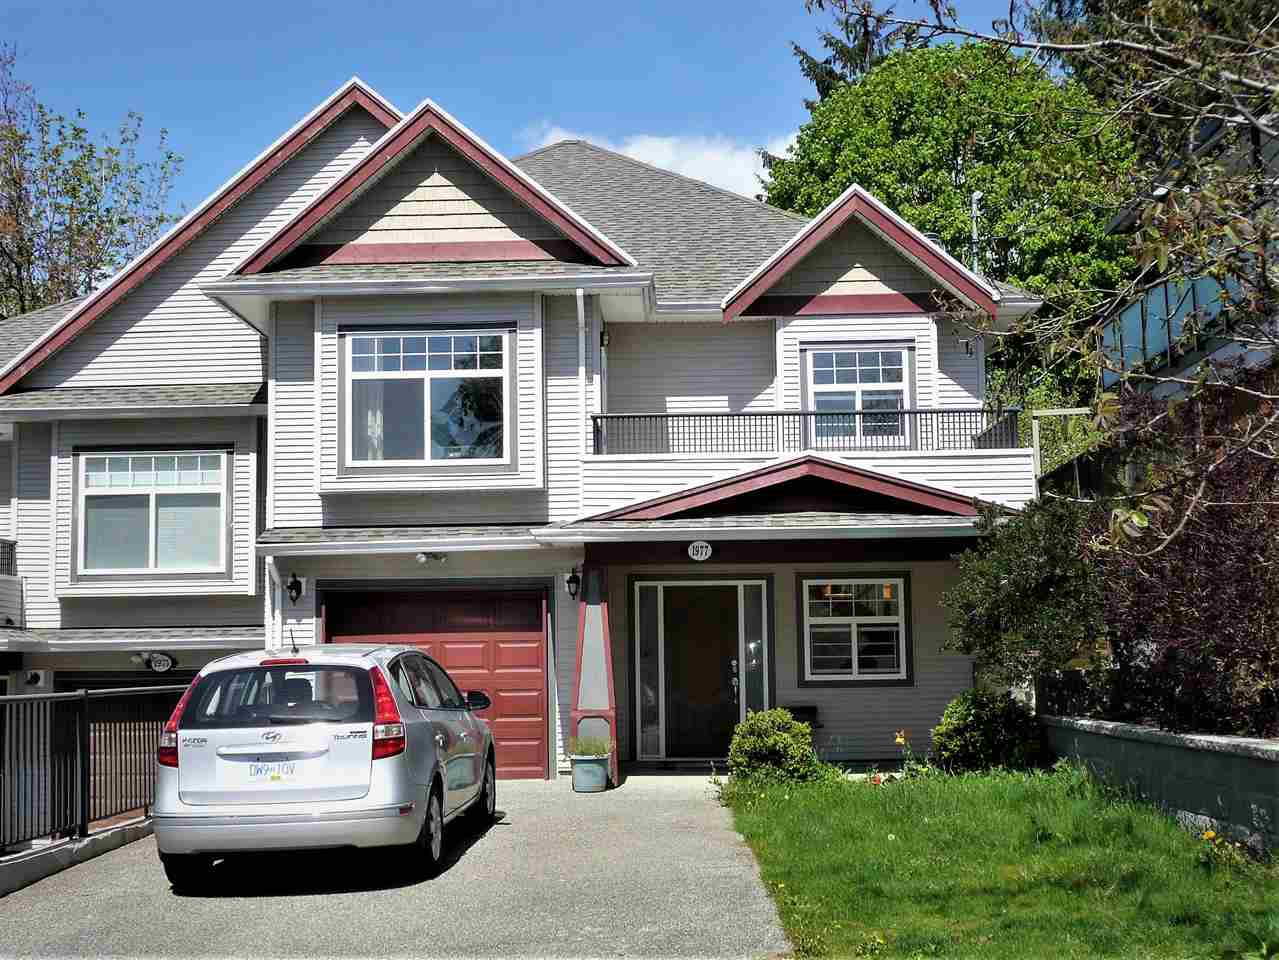 Main Photo: 1977 PETERSON Avenue in Coquitlam: Cape Horn House 1/2 Duplex for sale : MLS®# R2364091